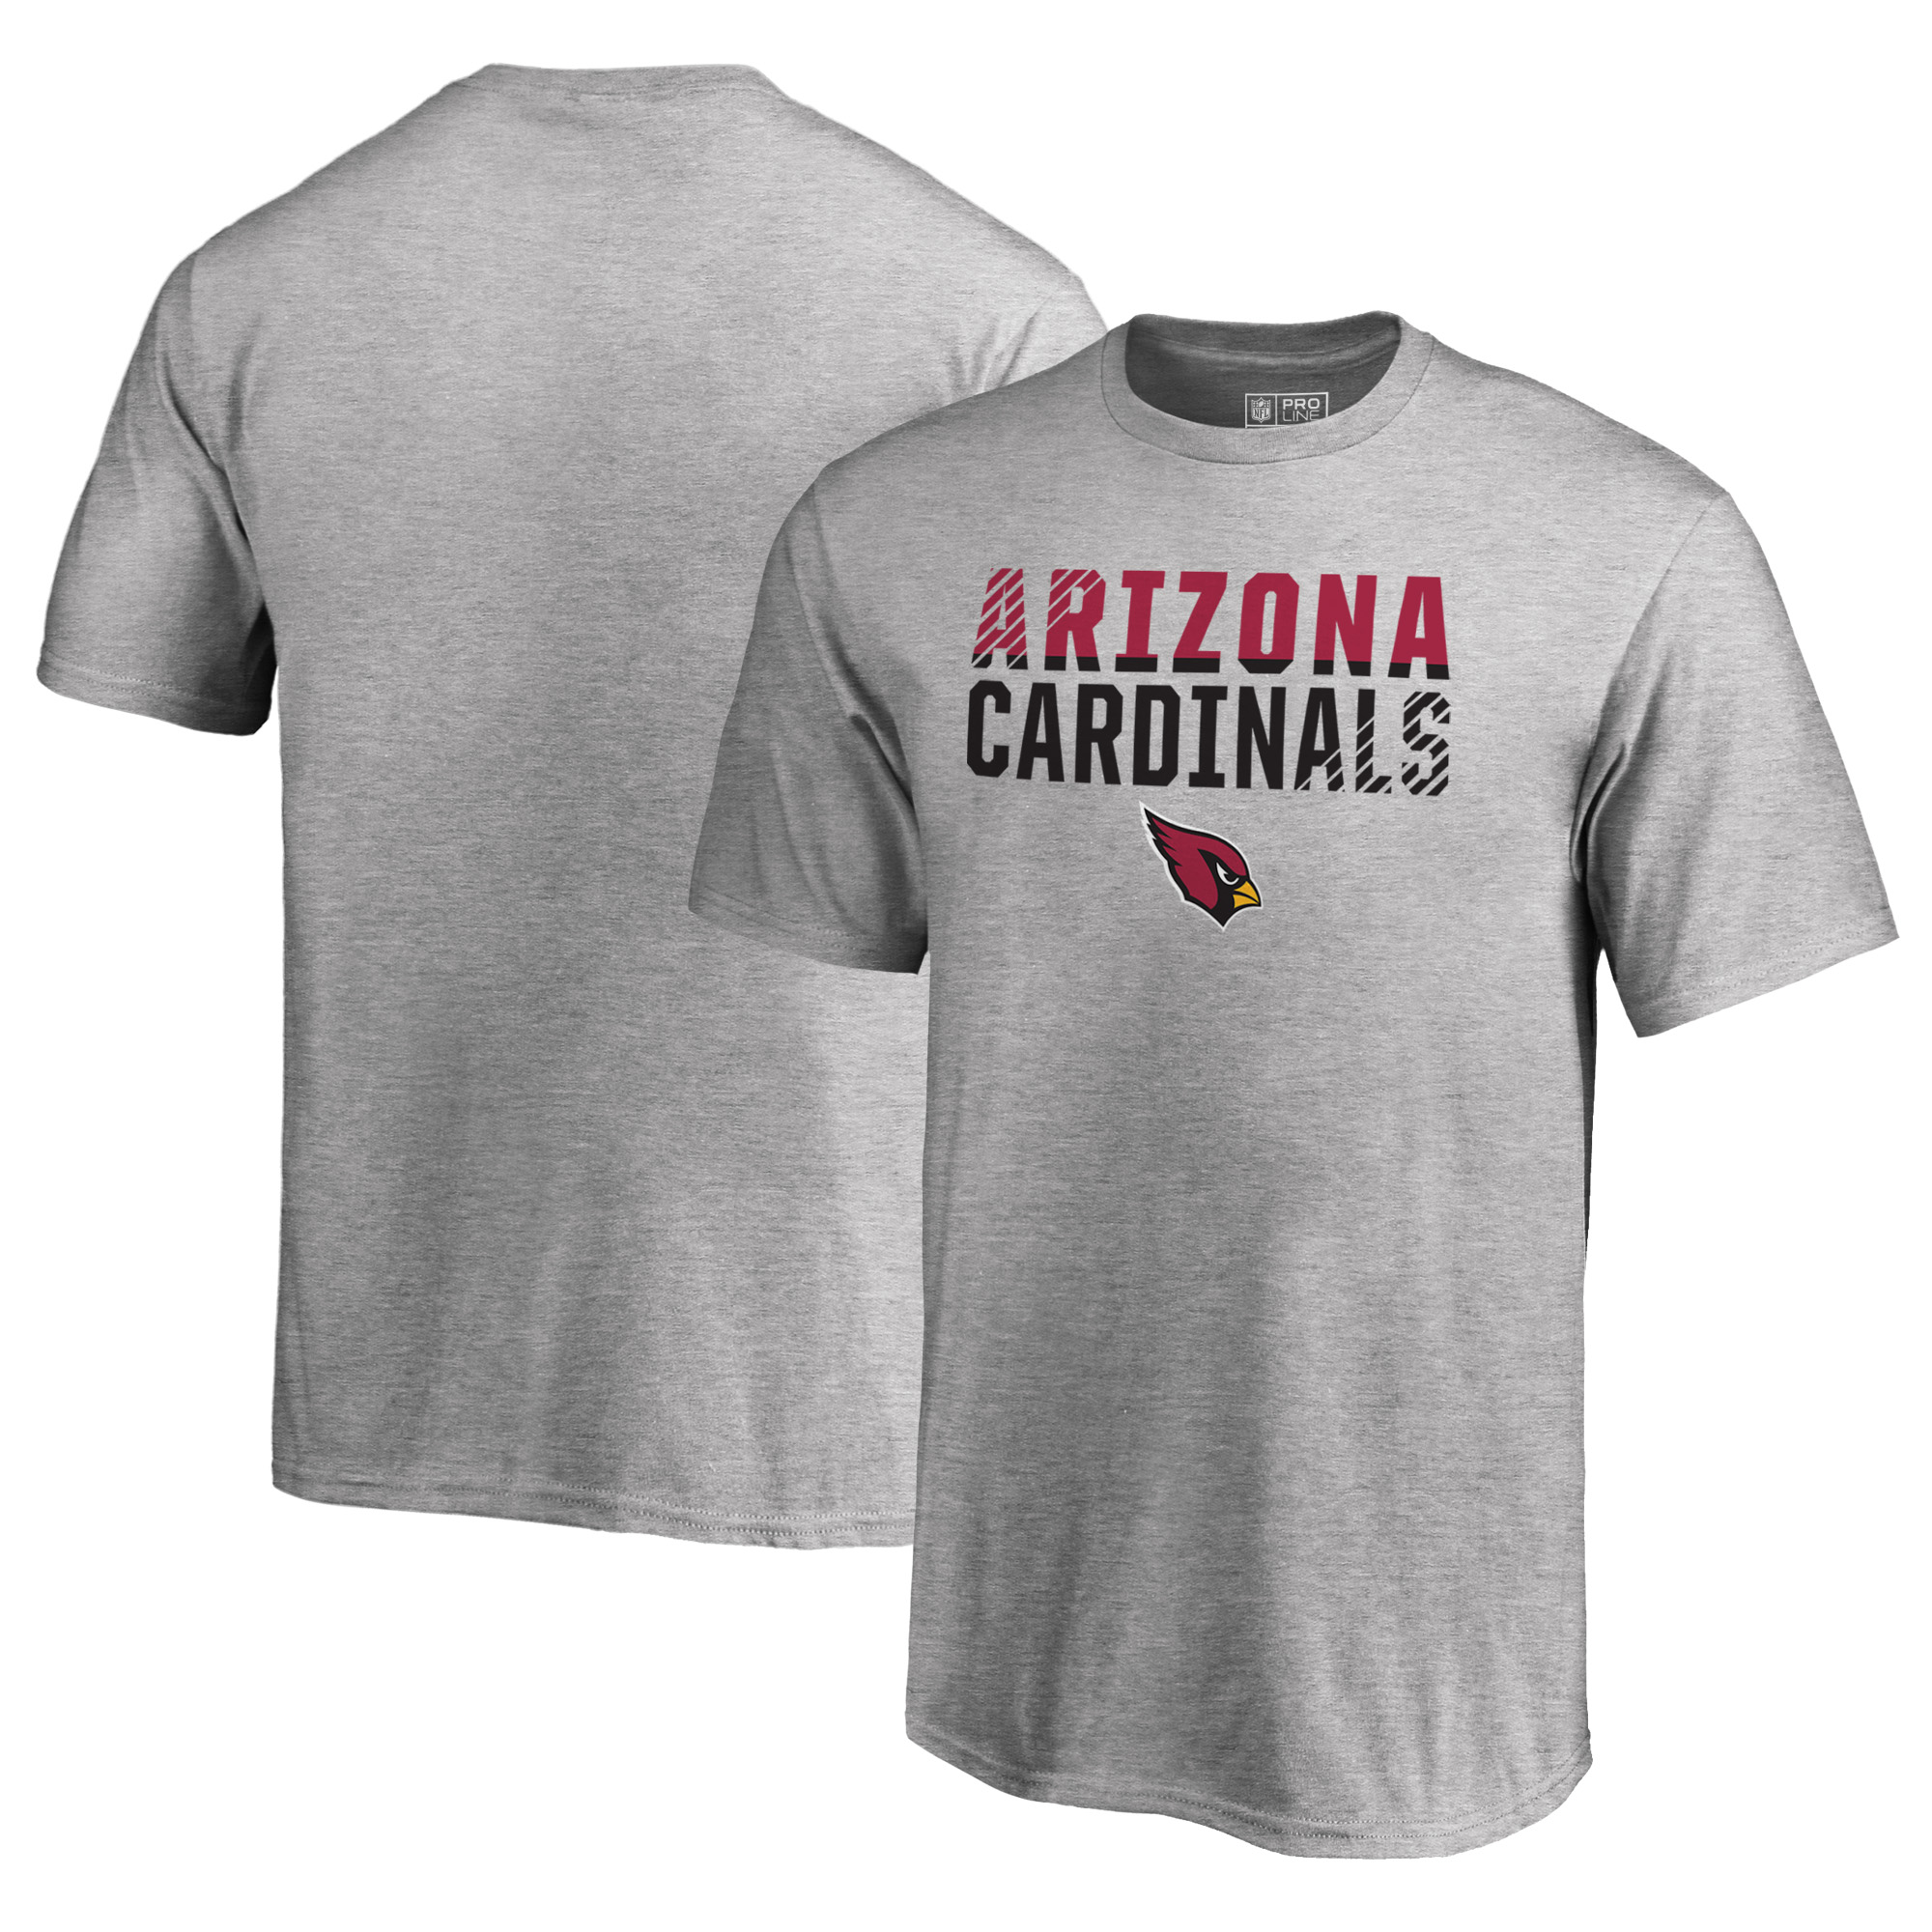 Arizona Cardinals NFL Pro Line by Fanatics Branded Youth Iconic Collection Fade Out T-Shirt - Ash